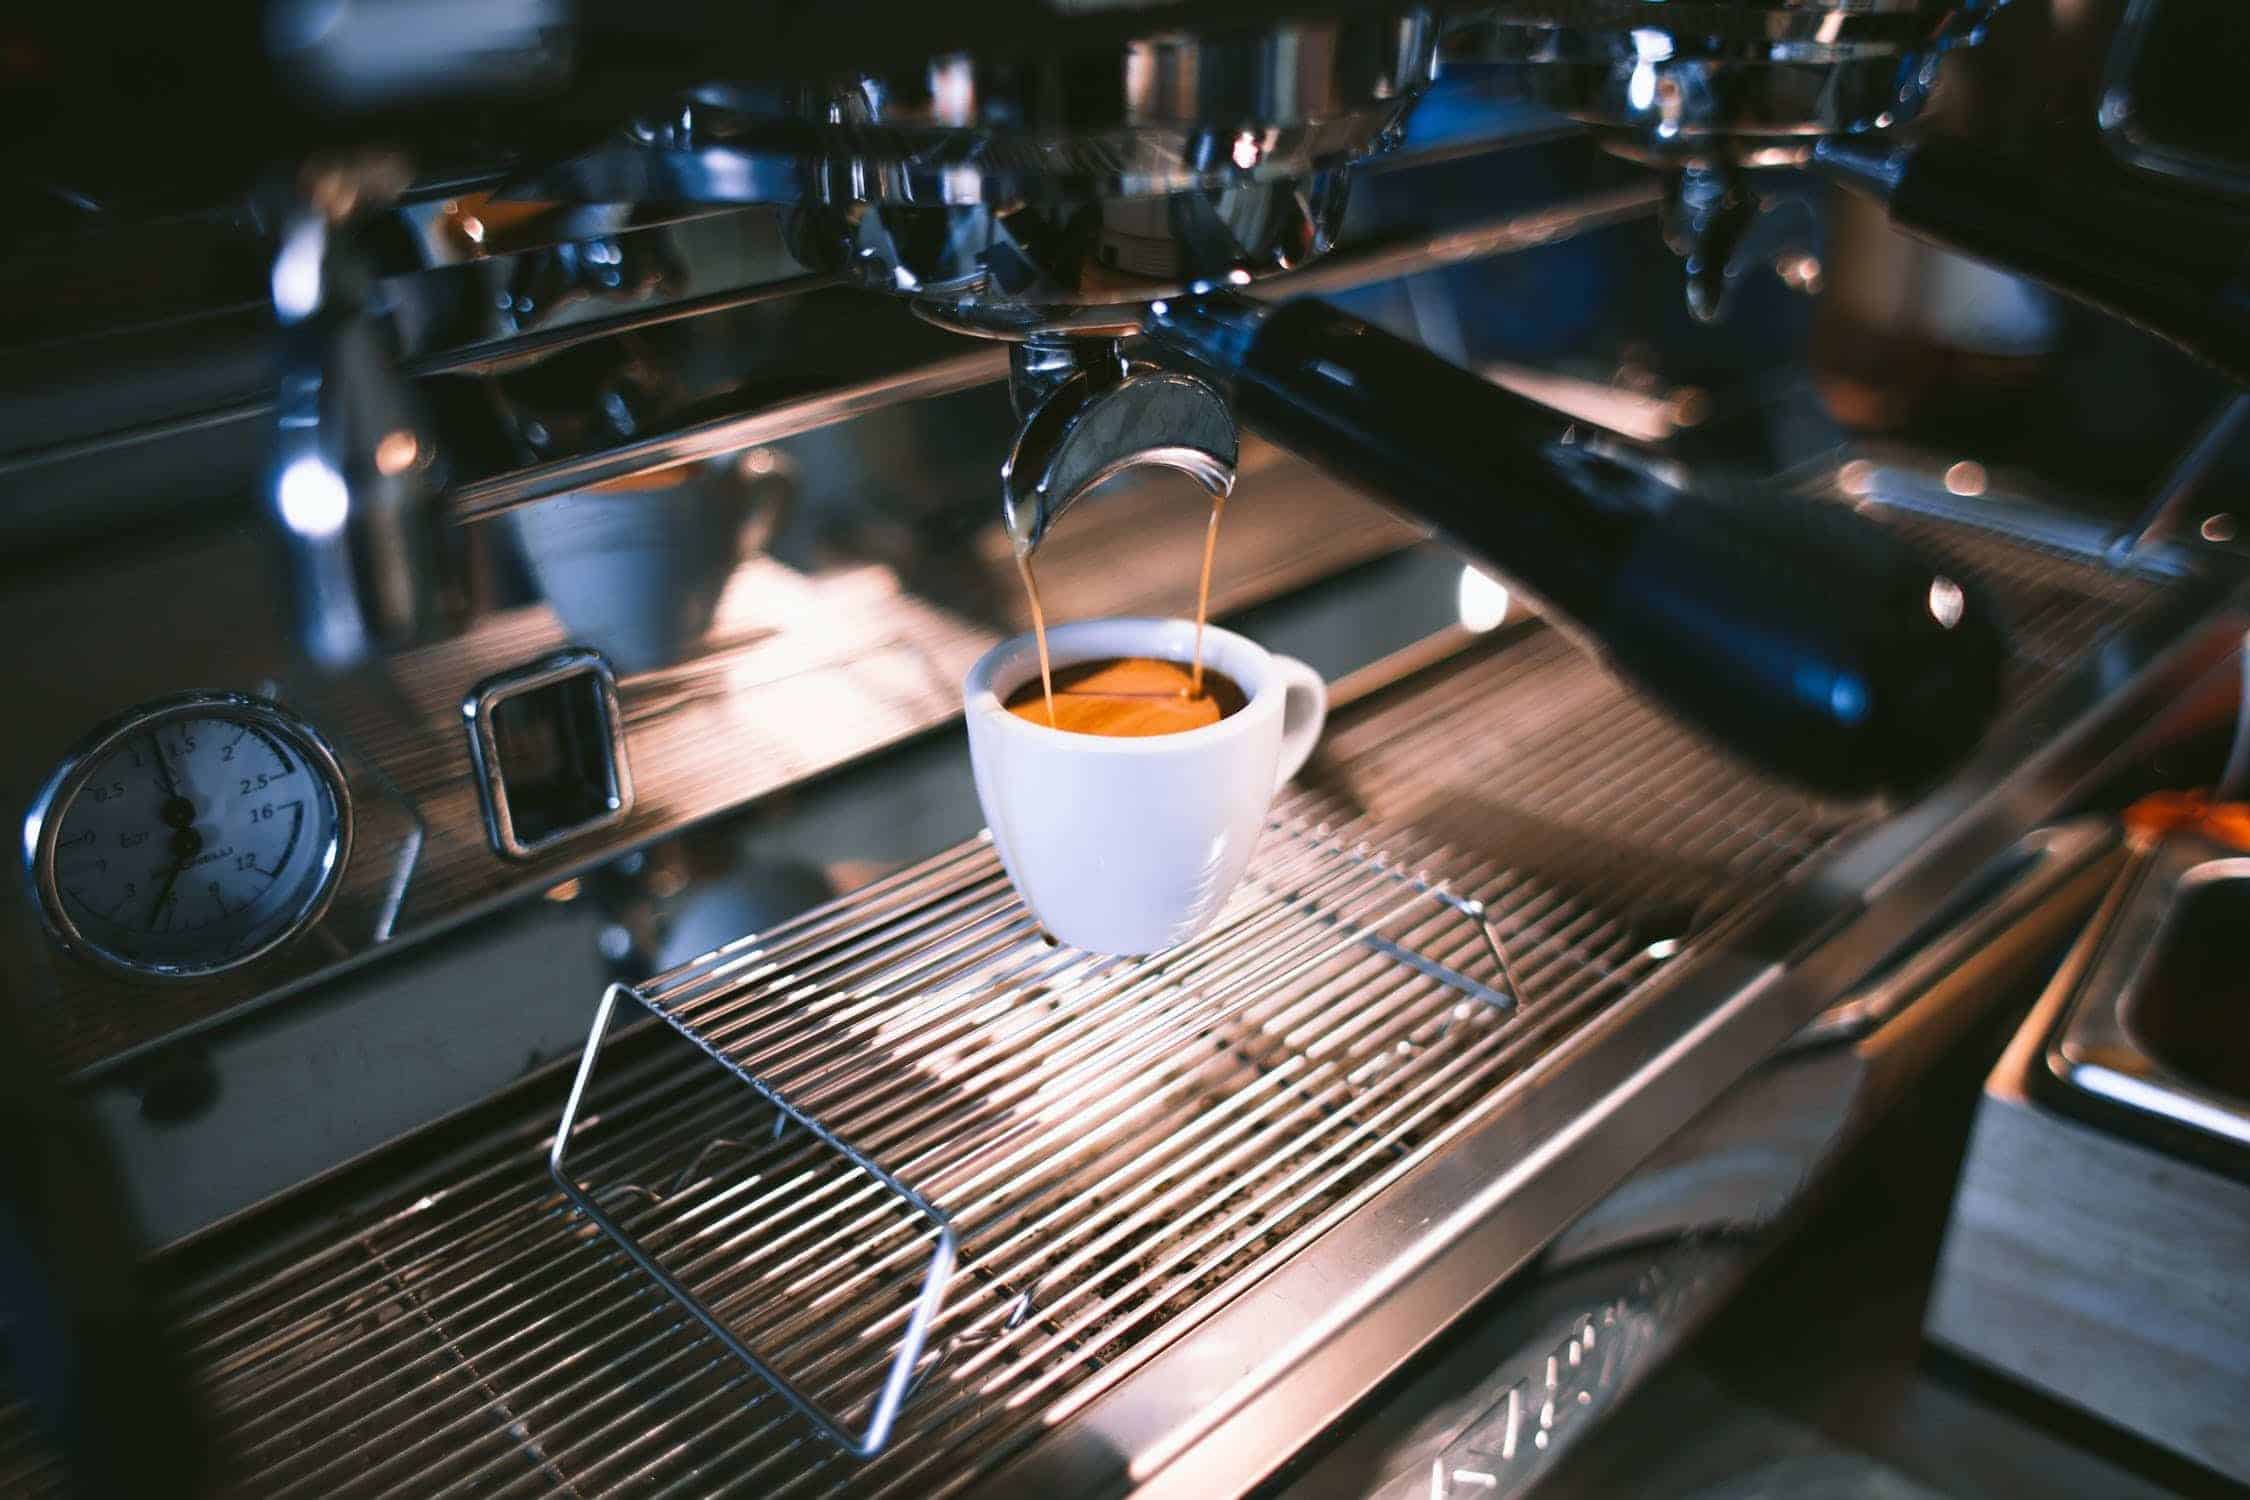 Factor in choosing the best espresso machine